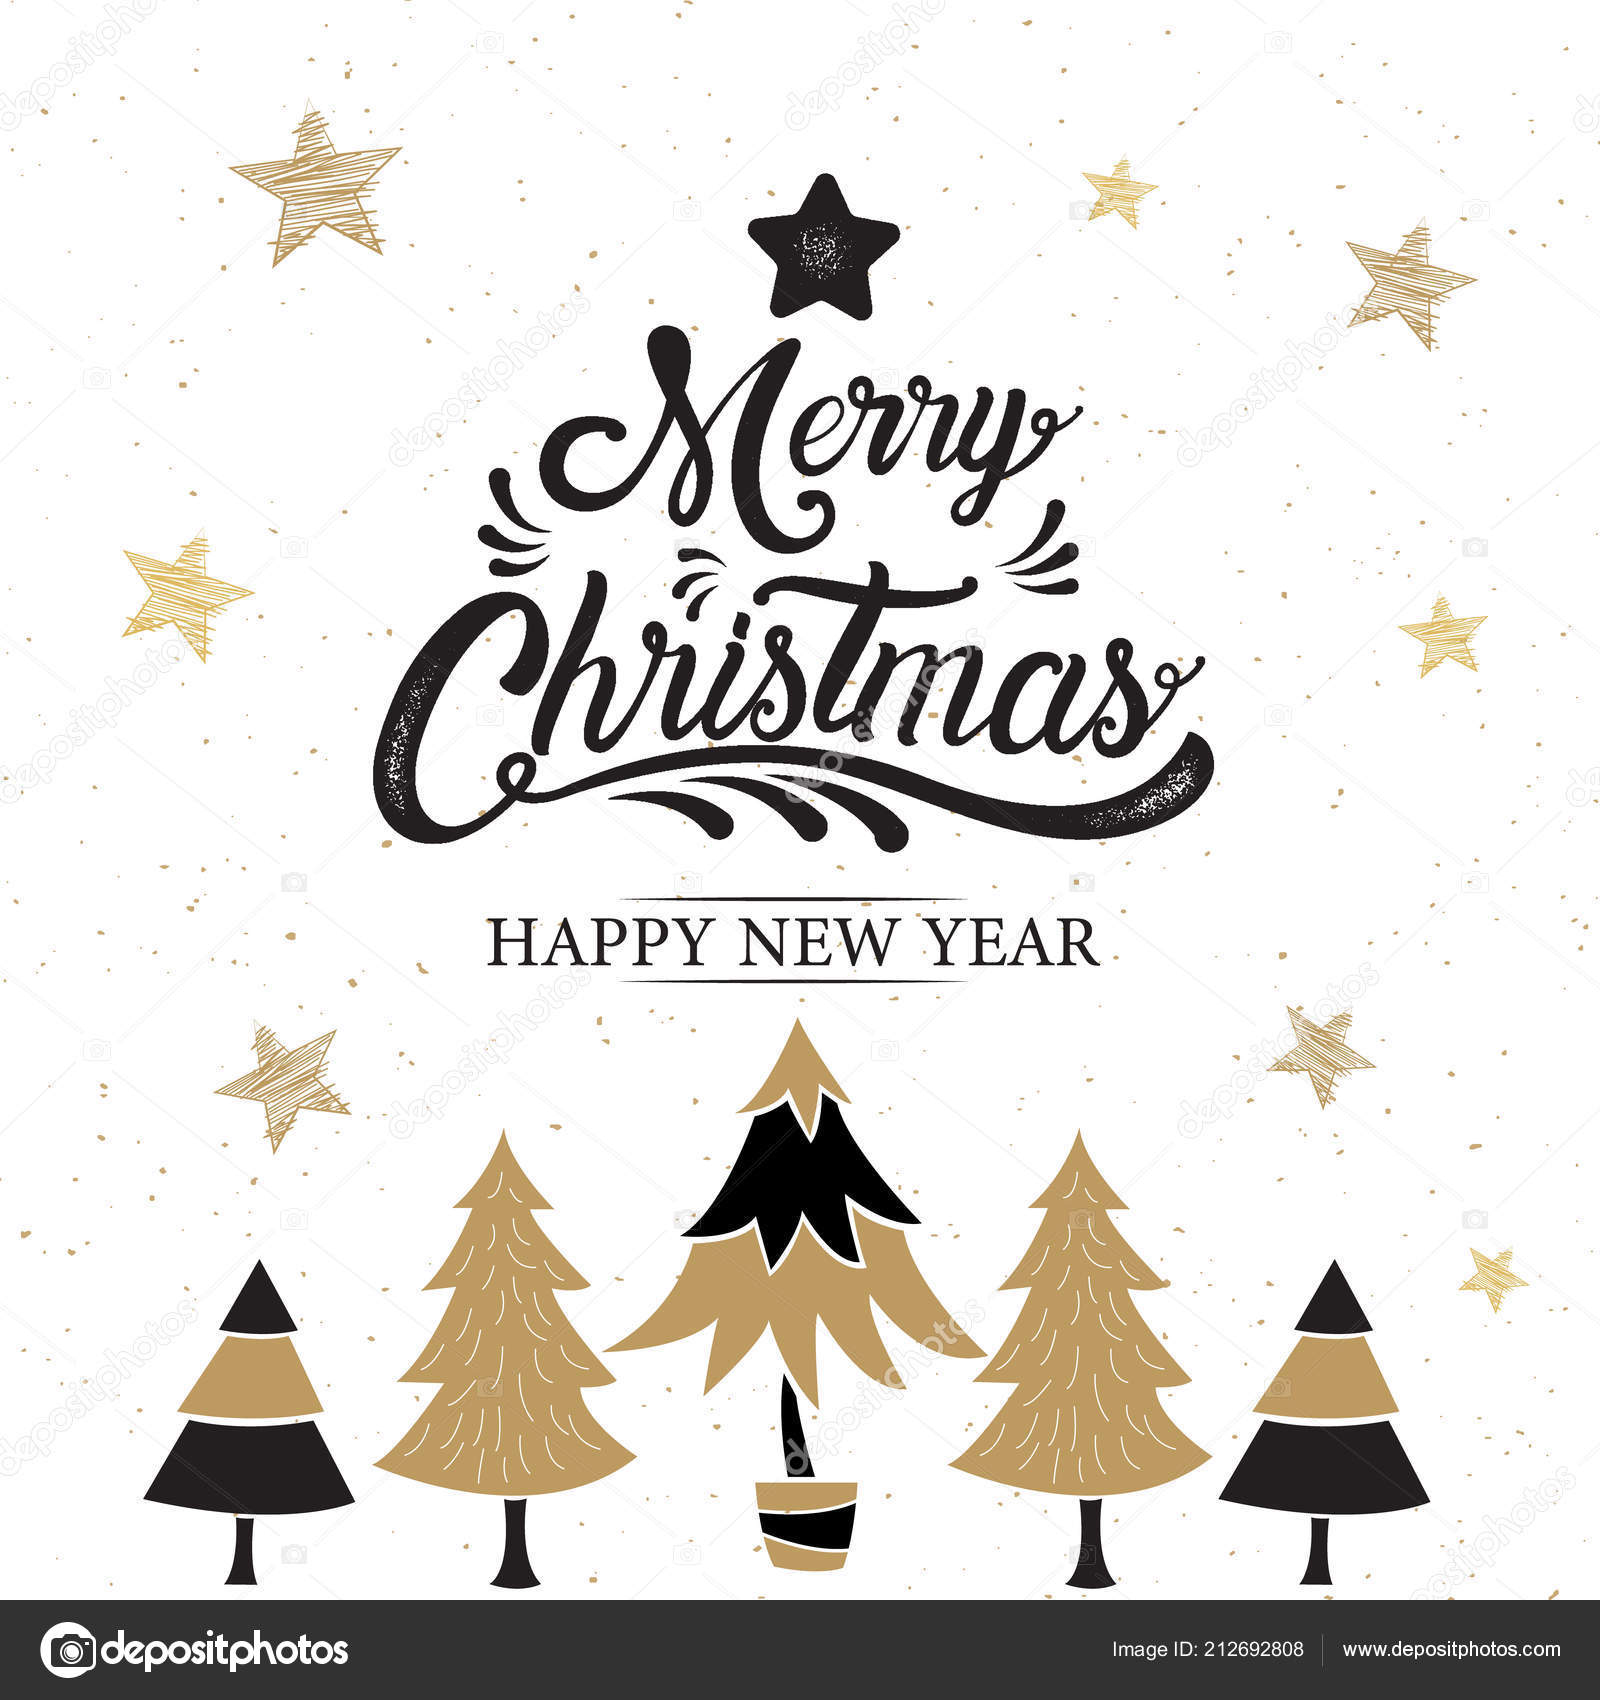 merry christmas happy new year logo symbol design gold vector stock vector